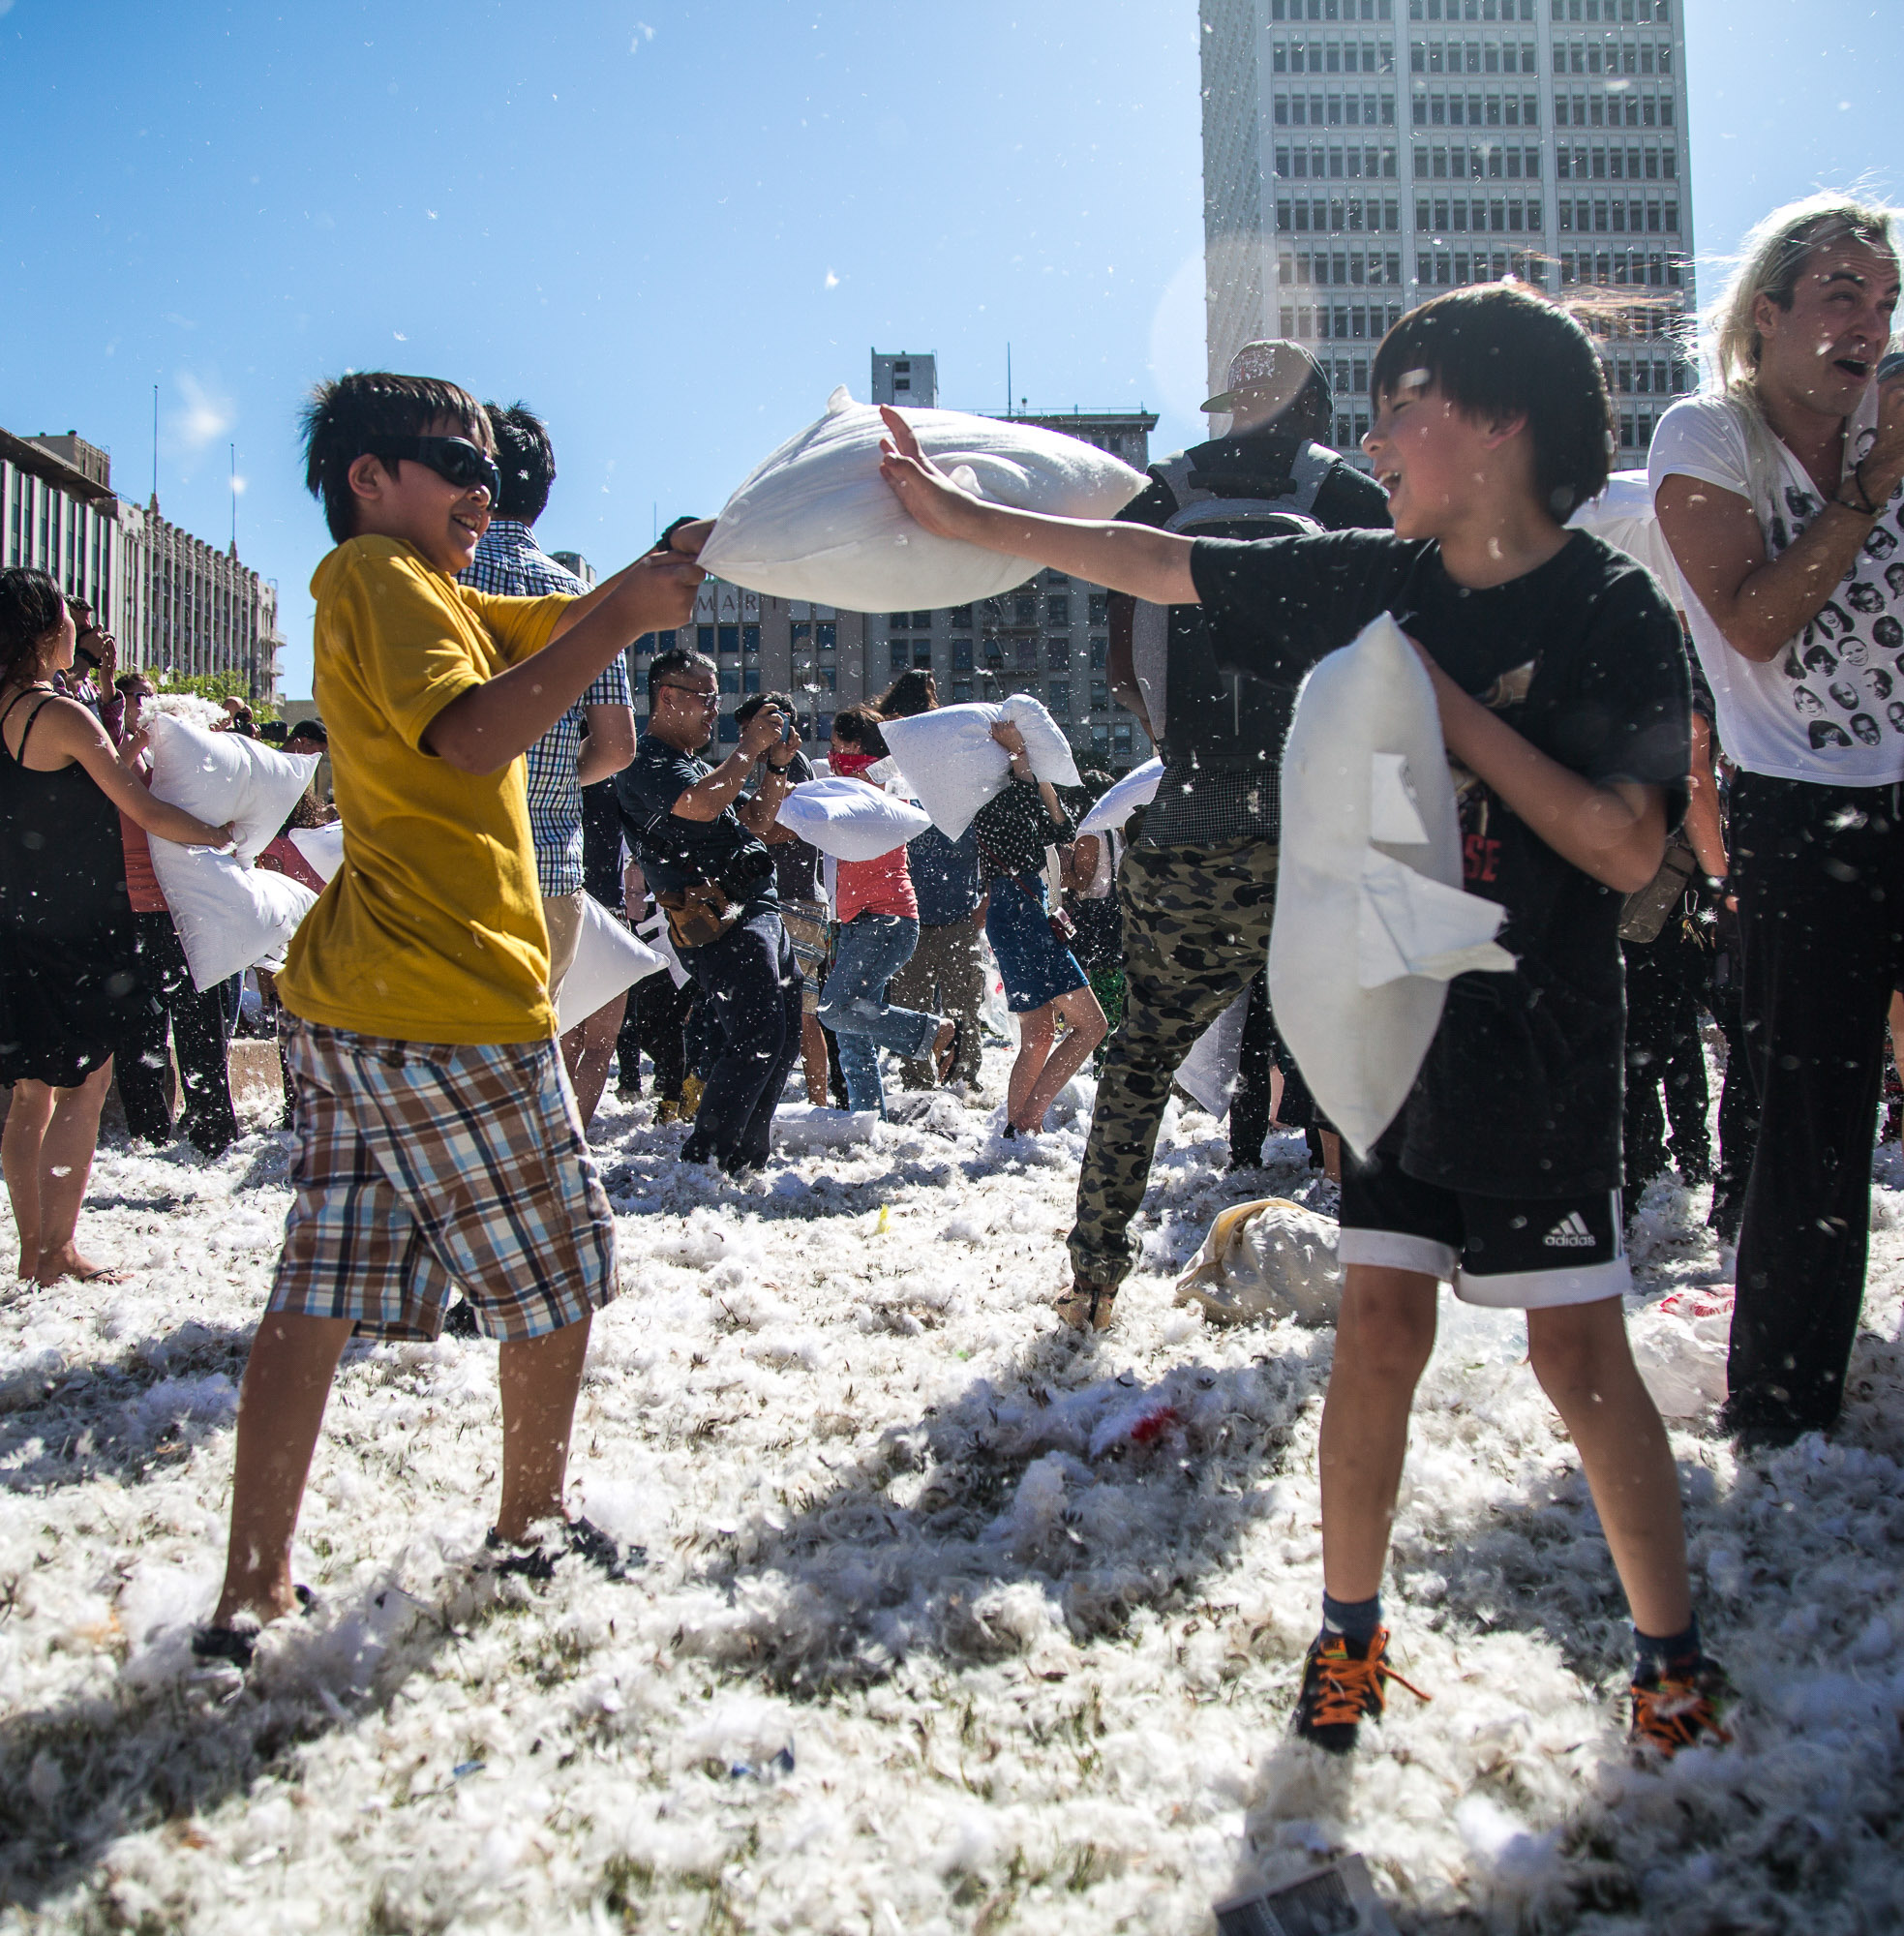 Two young pillow fight participants wage a pillow war on each other during the International Pillow Fight Day in Pershing Square in Downtown Los Angles on Saturday, April 1 2017. Hundreds of people traded soft blows in a giant pillow fight that dwarfed even the biggest slumber party slugfest. Children, teens, adults and seniors swung pillows at one another for over 2 hours during Saturdays event. (Corsair Photo: Matthew Martin)